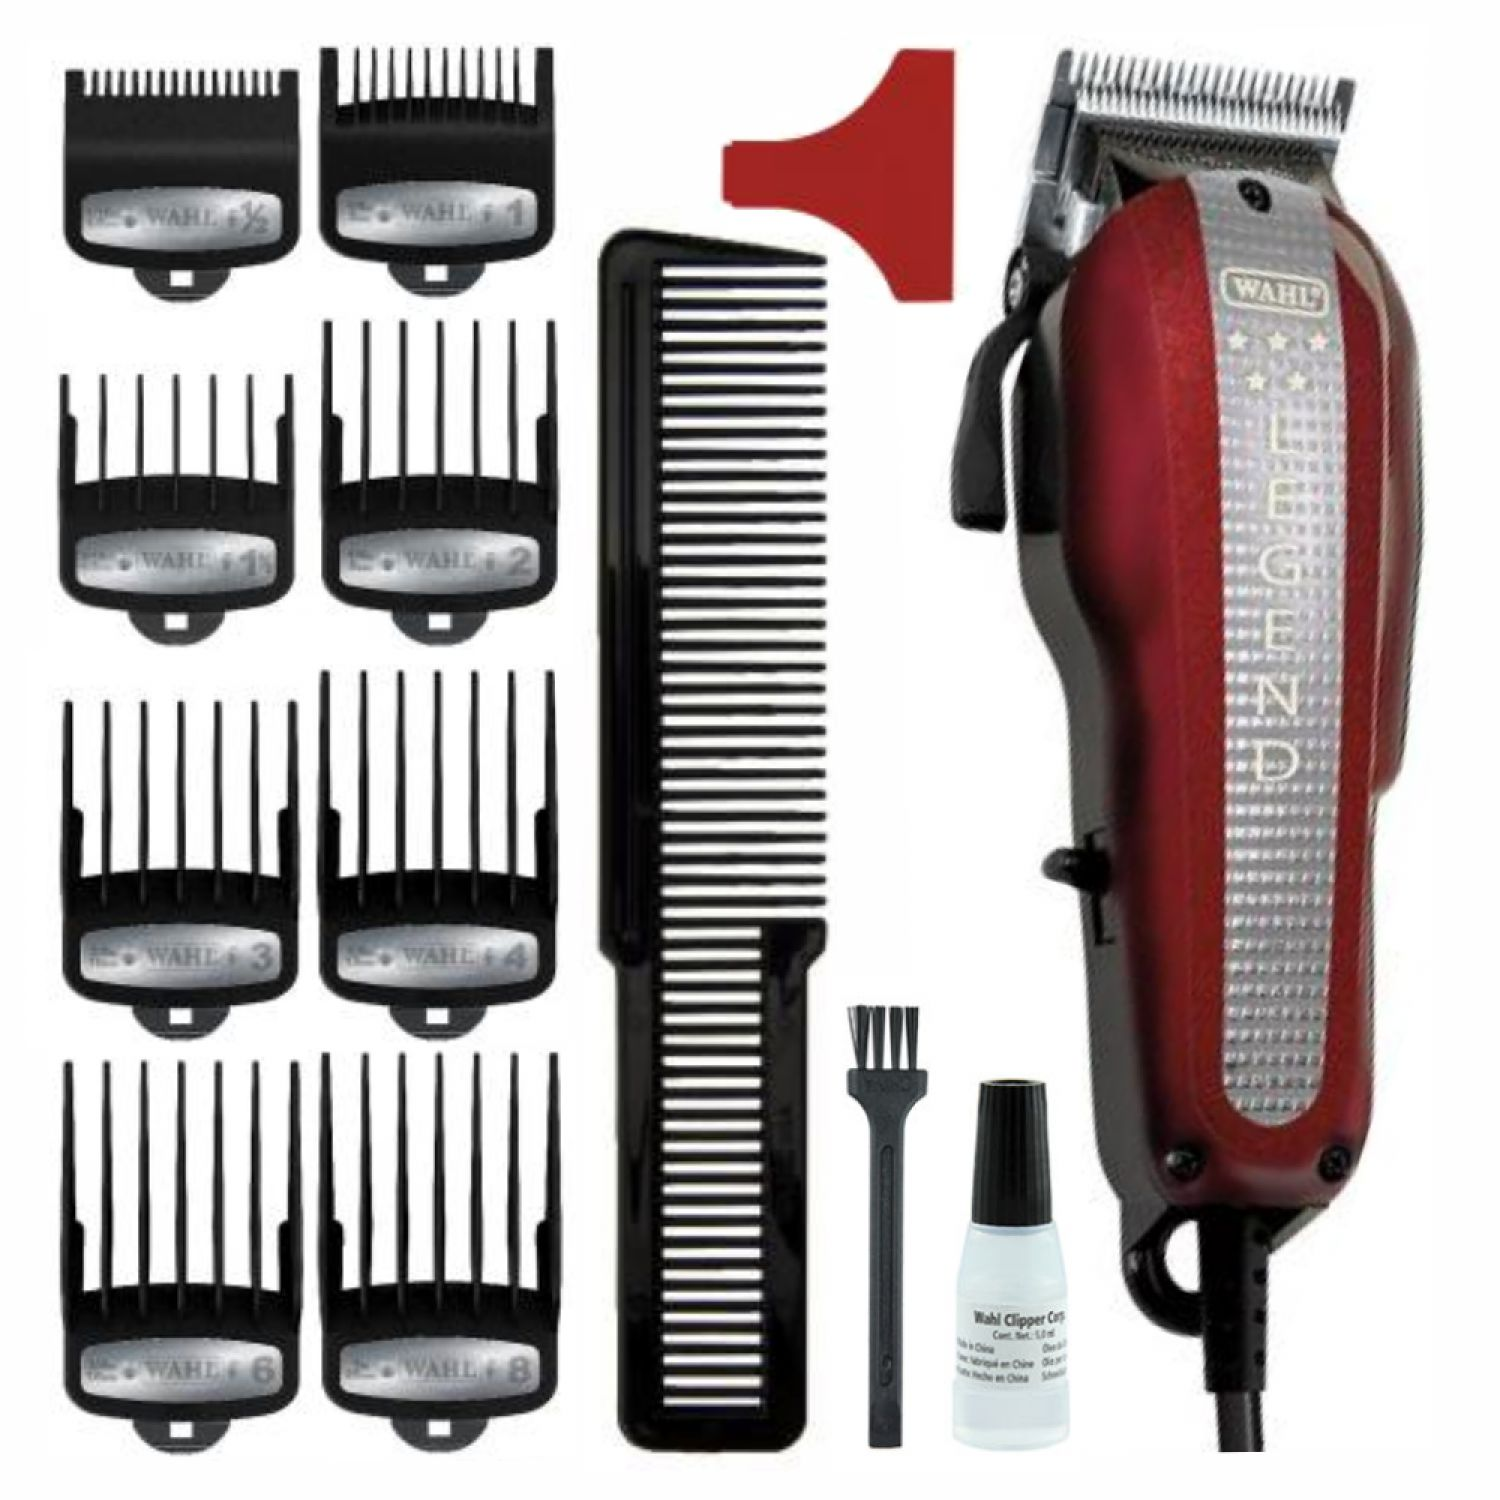 wahl legend haarschneider haarschneidemaschine clipper. Black Bedroom Furniture Sets. Home Design Ideas